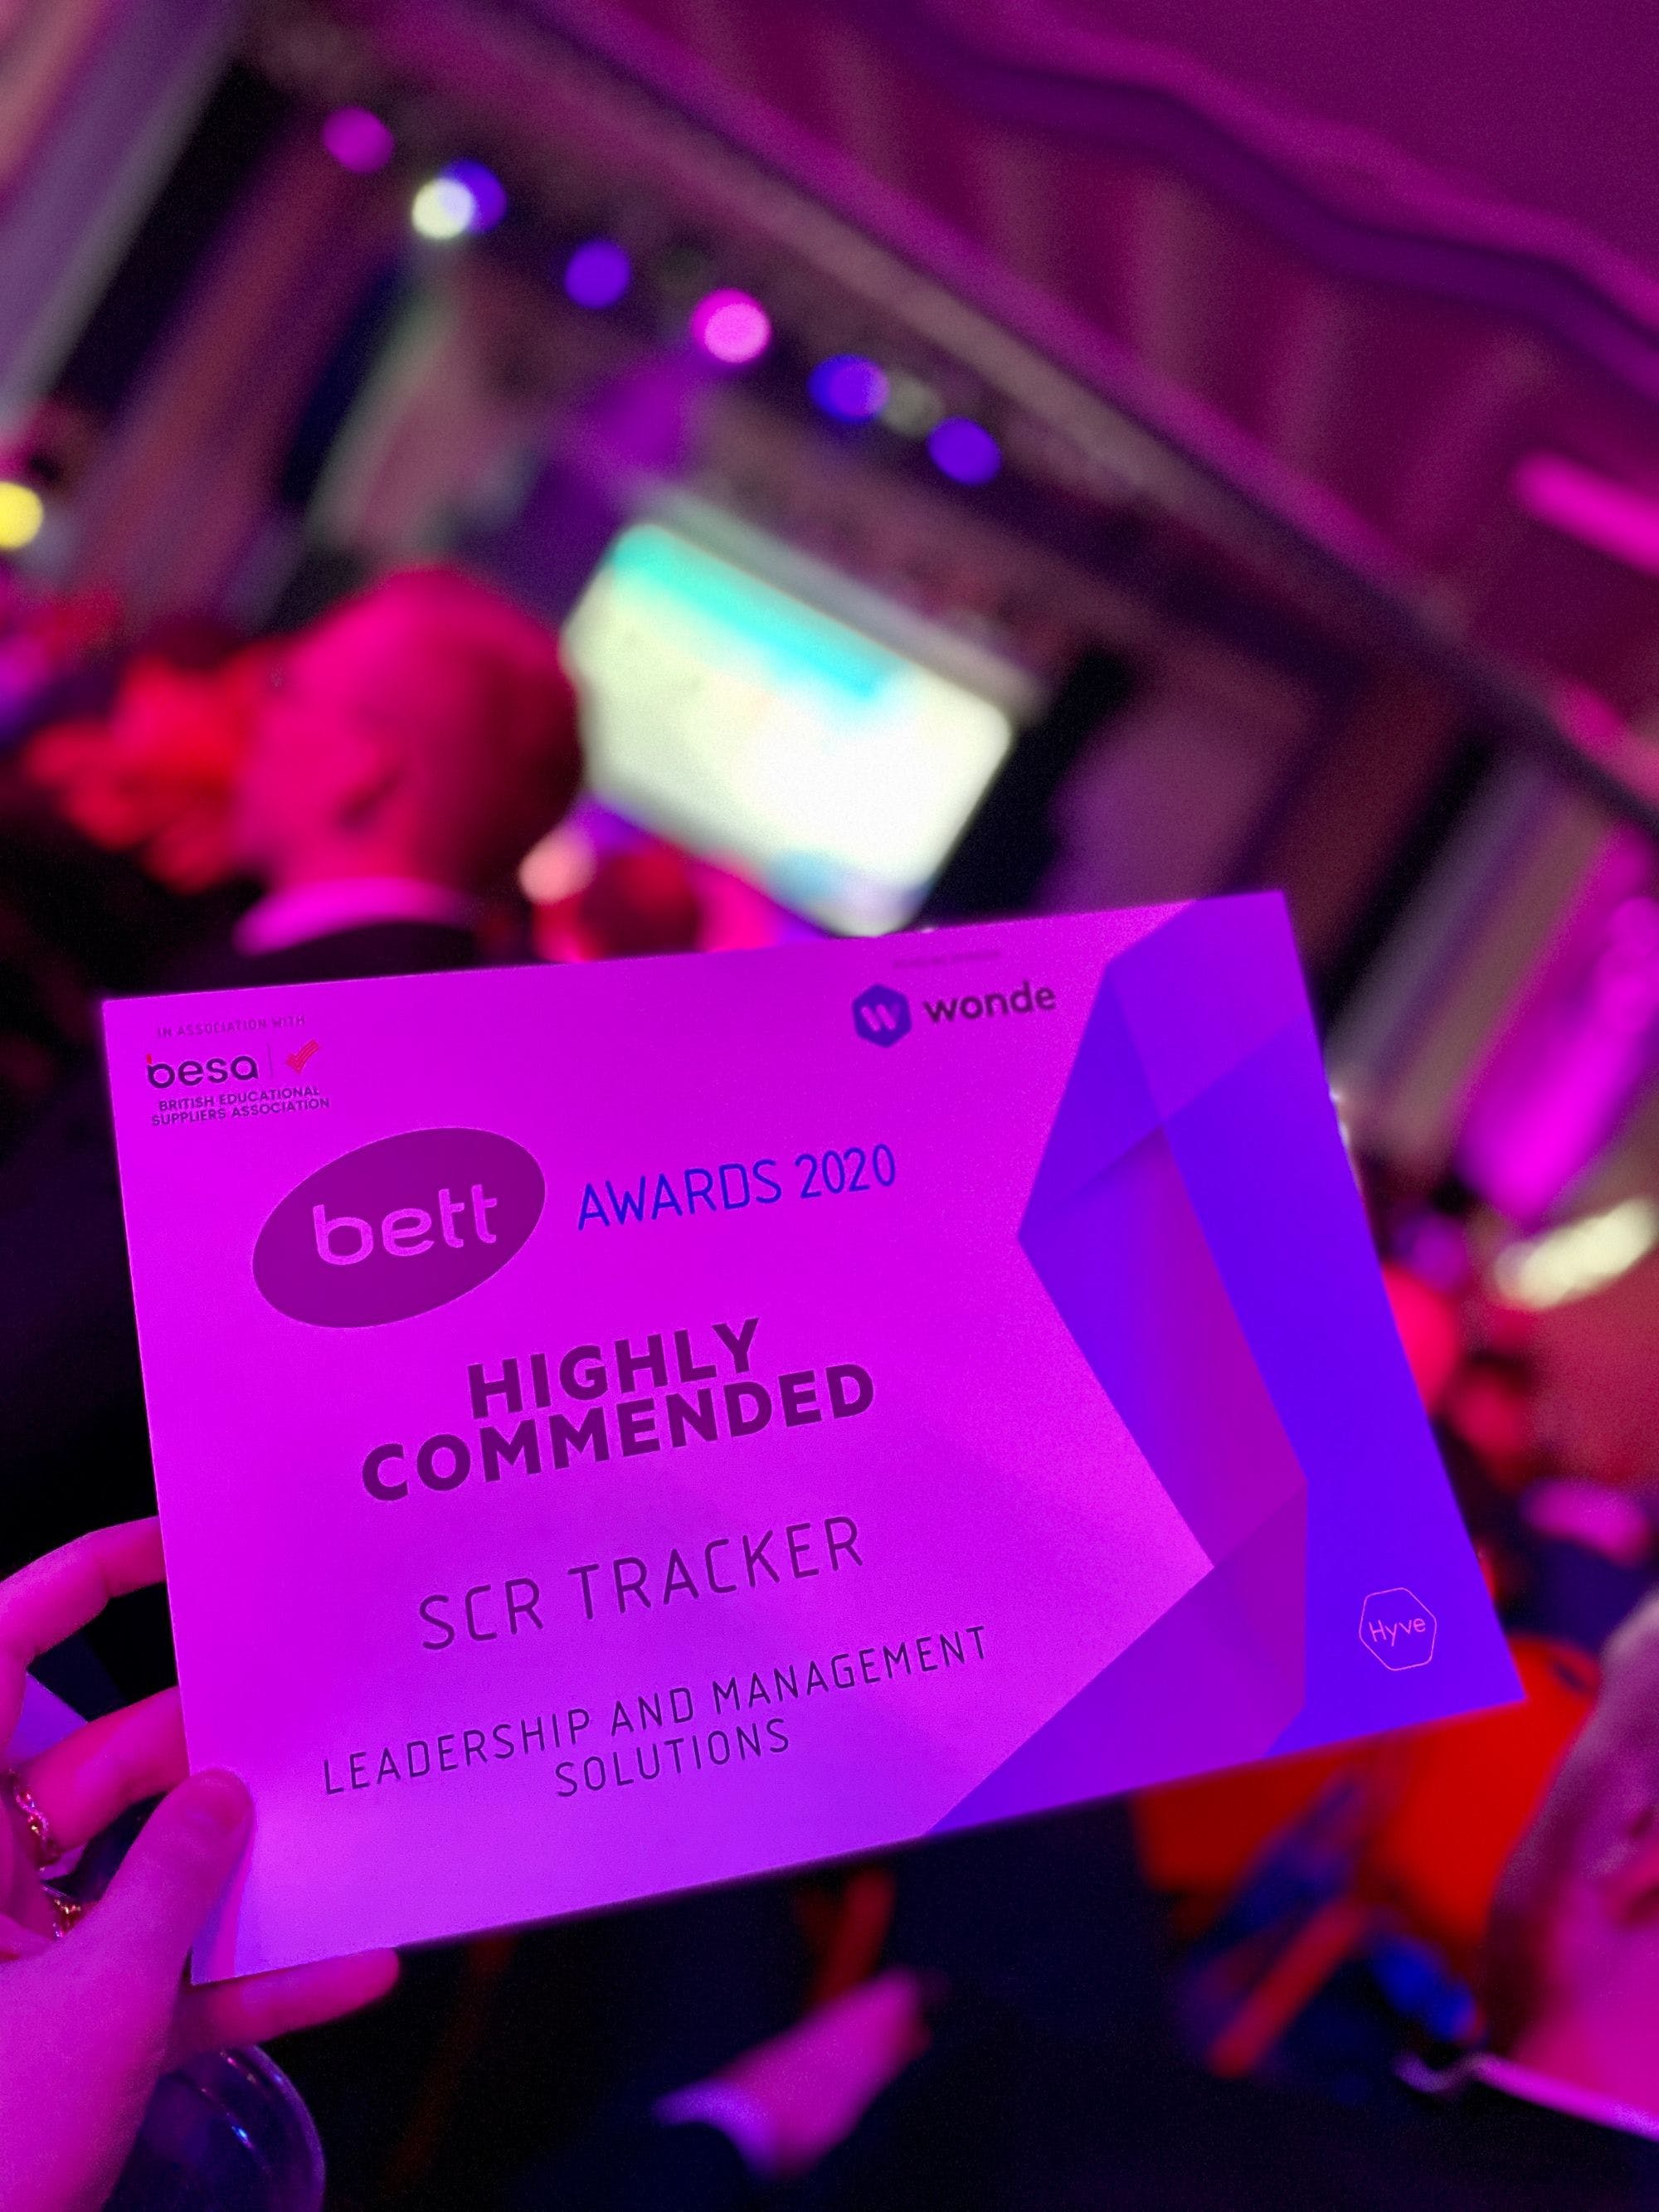 Photo by SCR Tracker team used for blog post on Bett Show awards 2020 Troxy London SCR Tracker wins highly commended in leadership and management solutions judges commented that SCR Tracker demonstrated an entrepreneurial approach, spotted an opportunity and created a solution which helps schools to fulfil their legal obligation in their core function of safeguarding young people